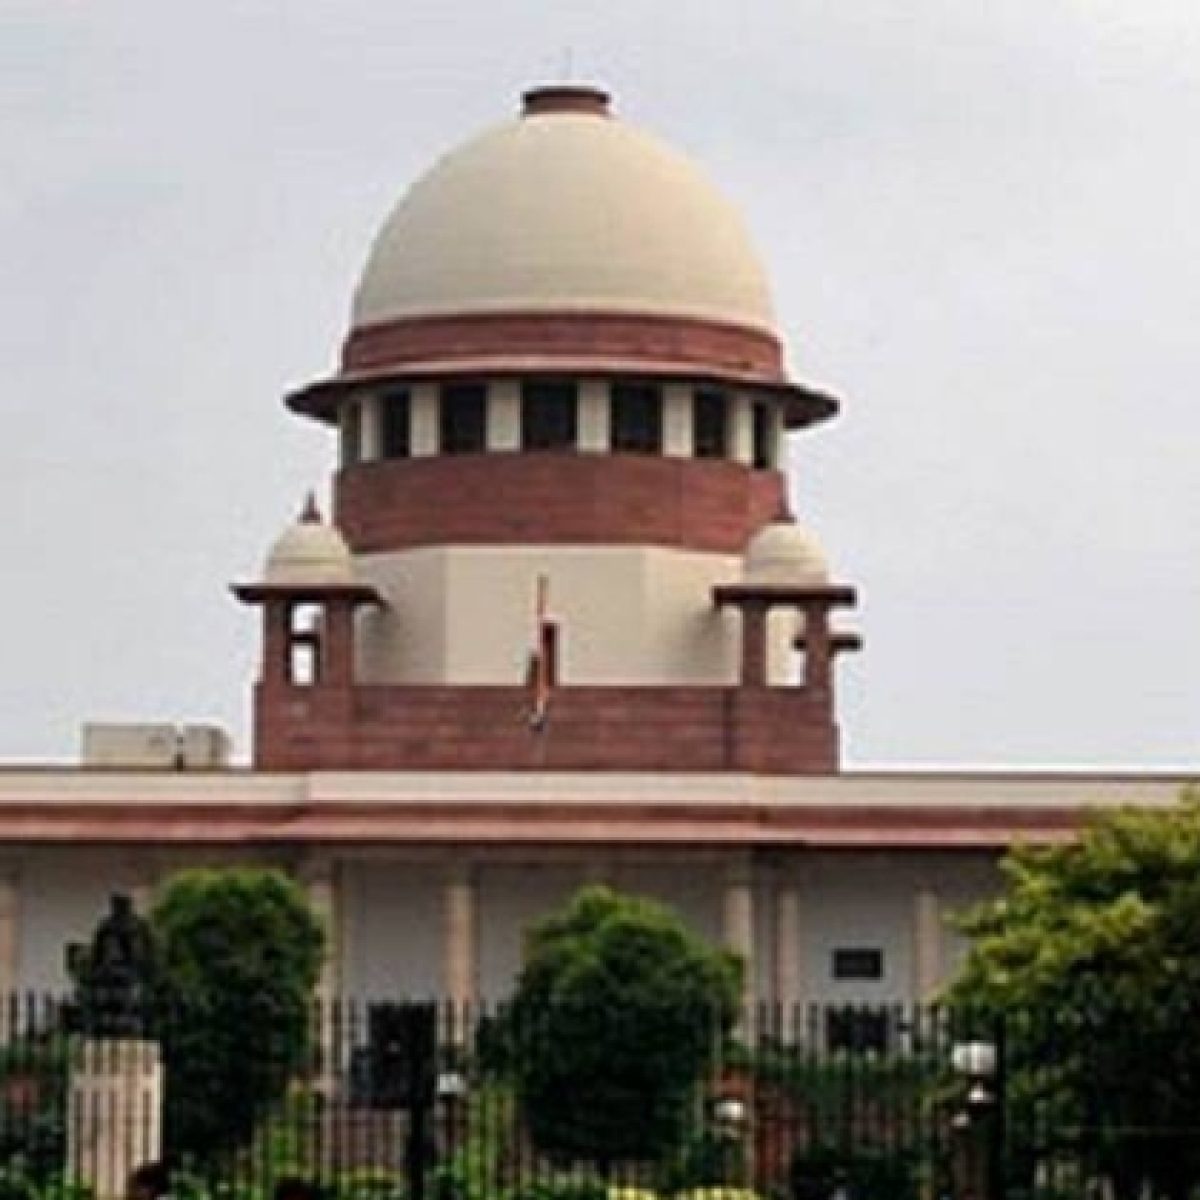 'It will be a retrograde act': SC dismisses EC's plea to restrain media from reporting oral observations